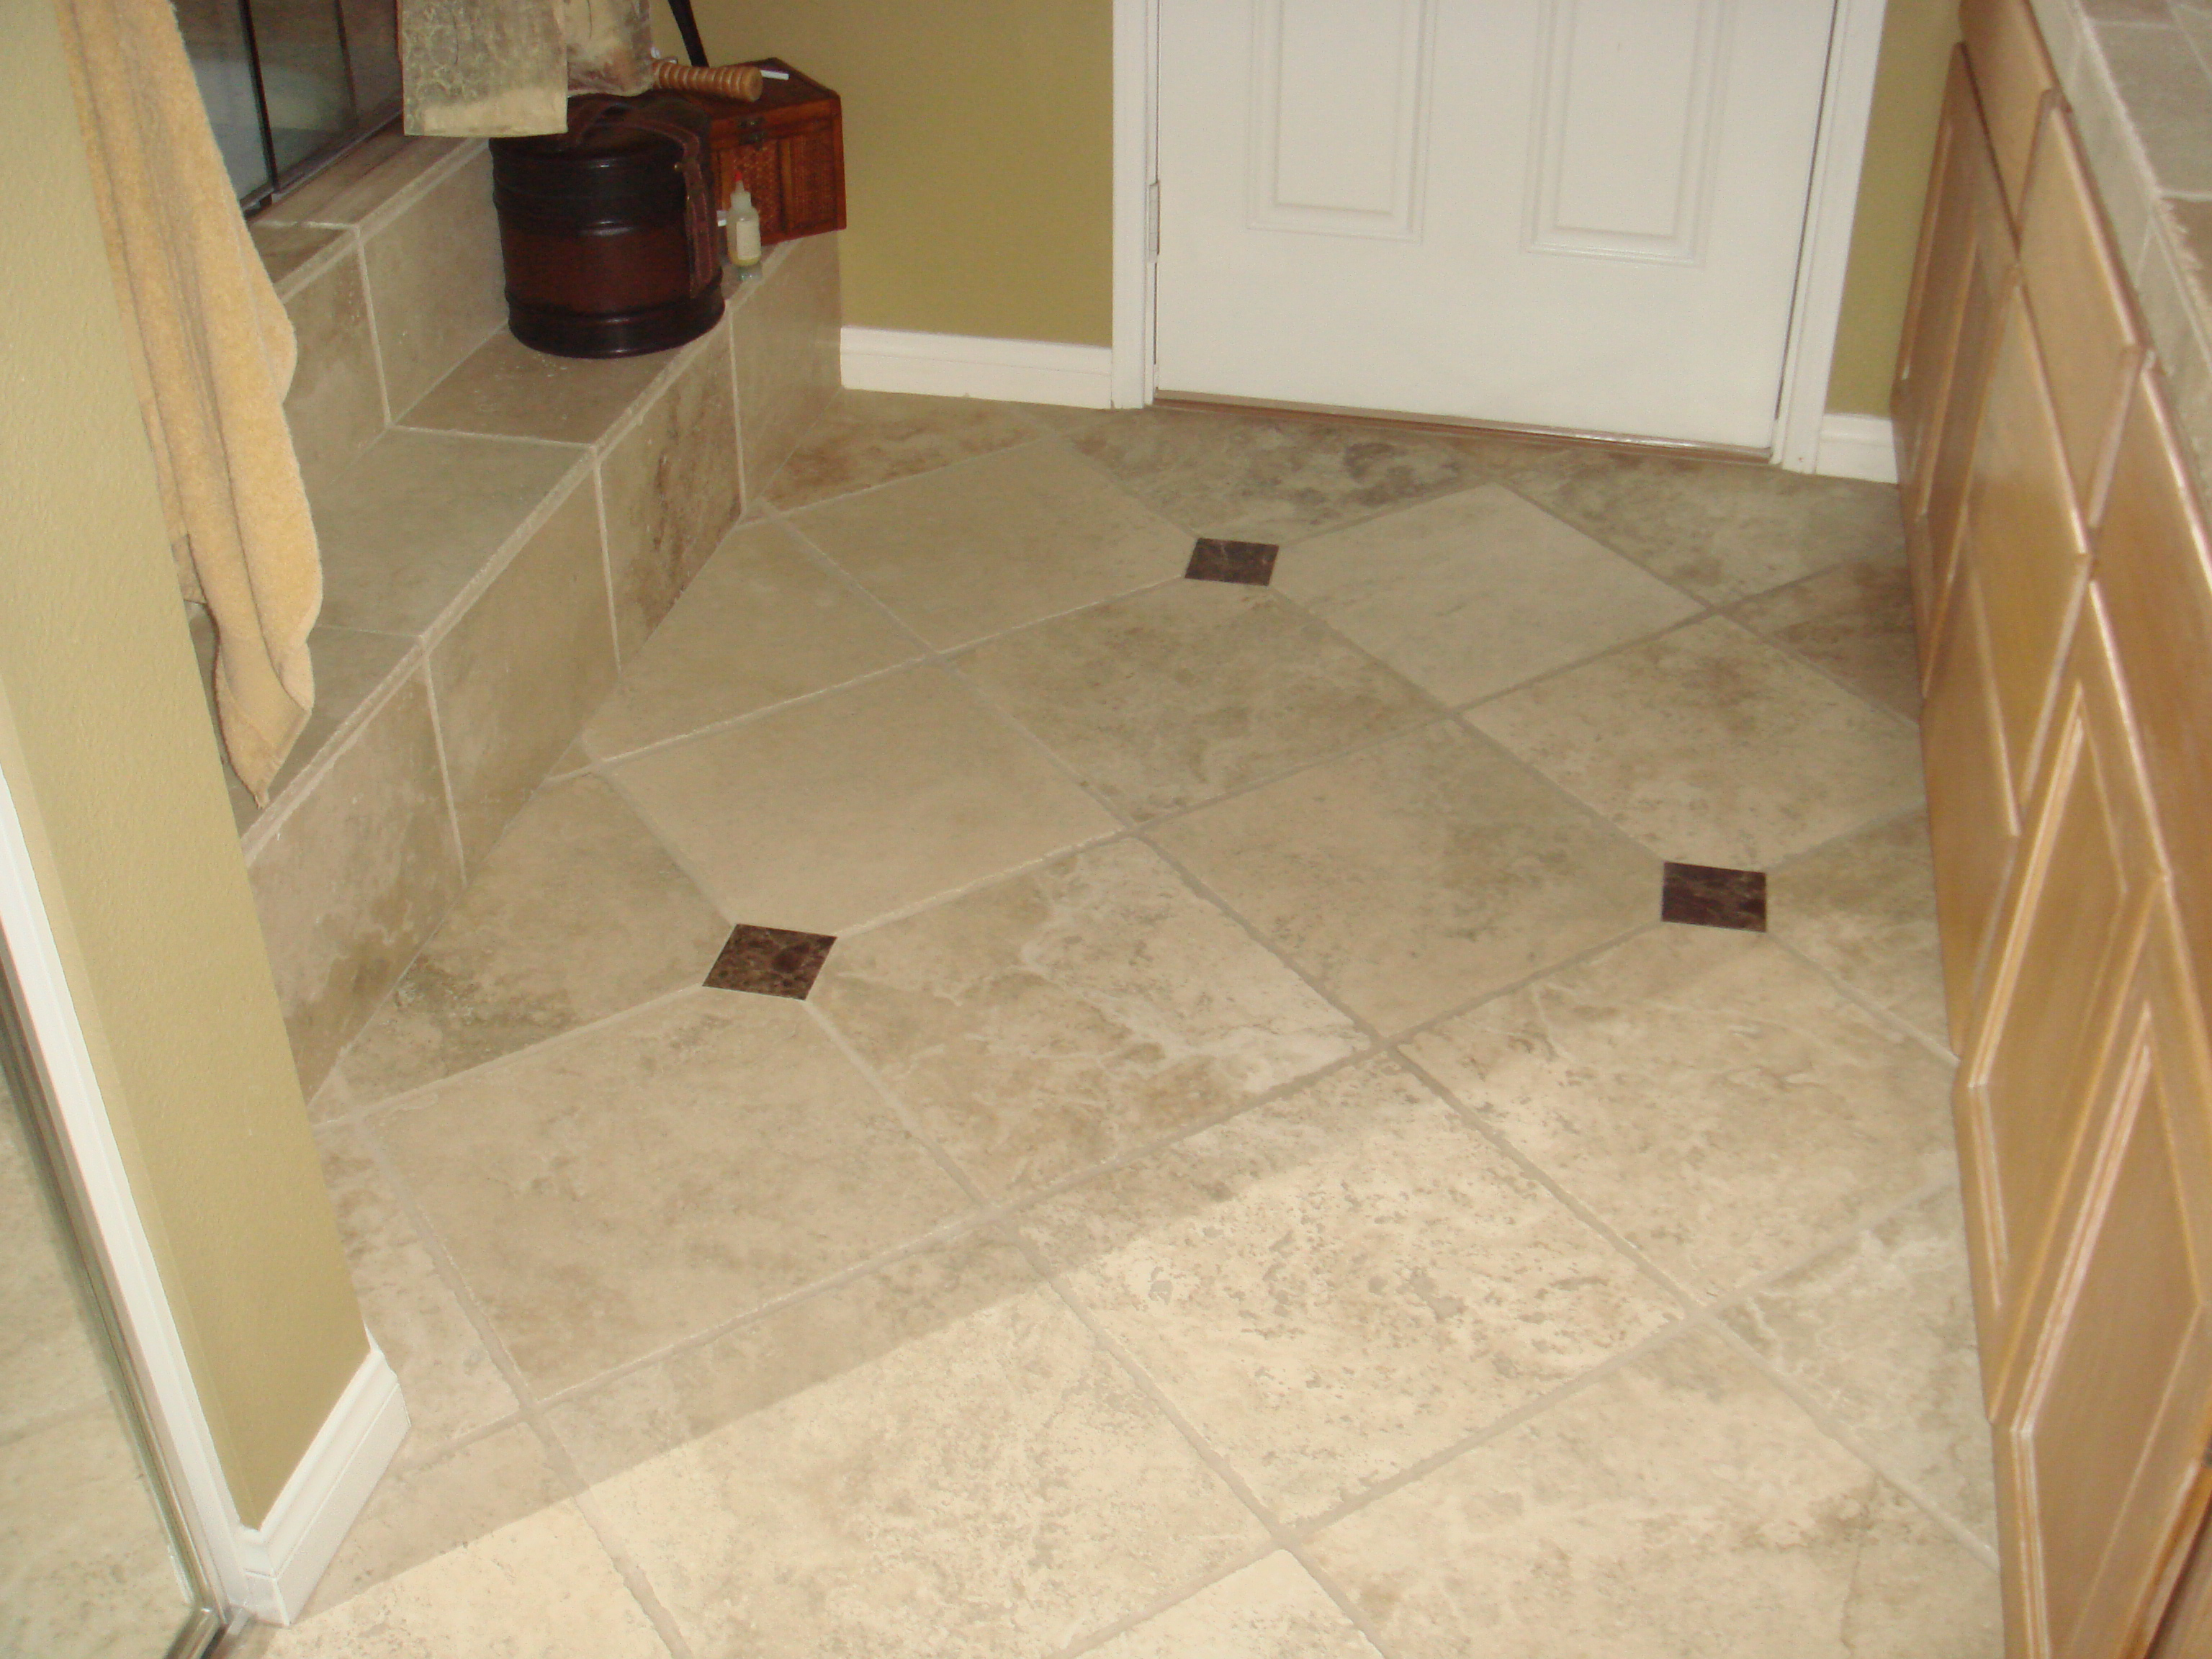 Bathroom Floor Ceramic Tile Design Ideas ~ Amazing ideas and pictures of the best vinyl tiles for